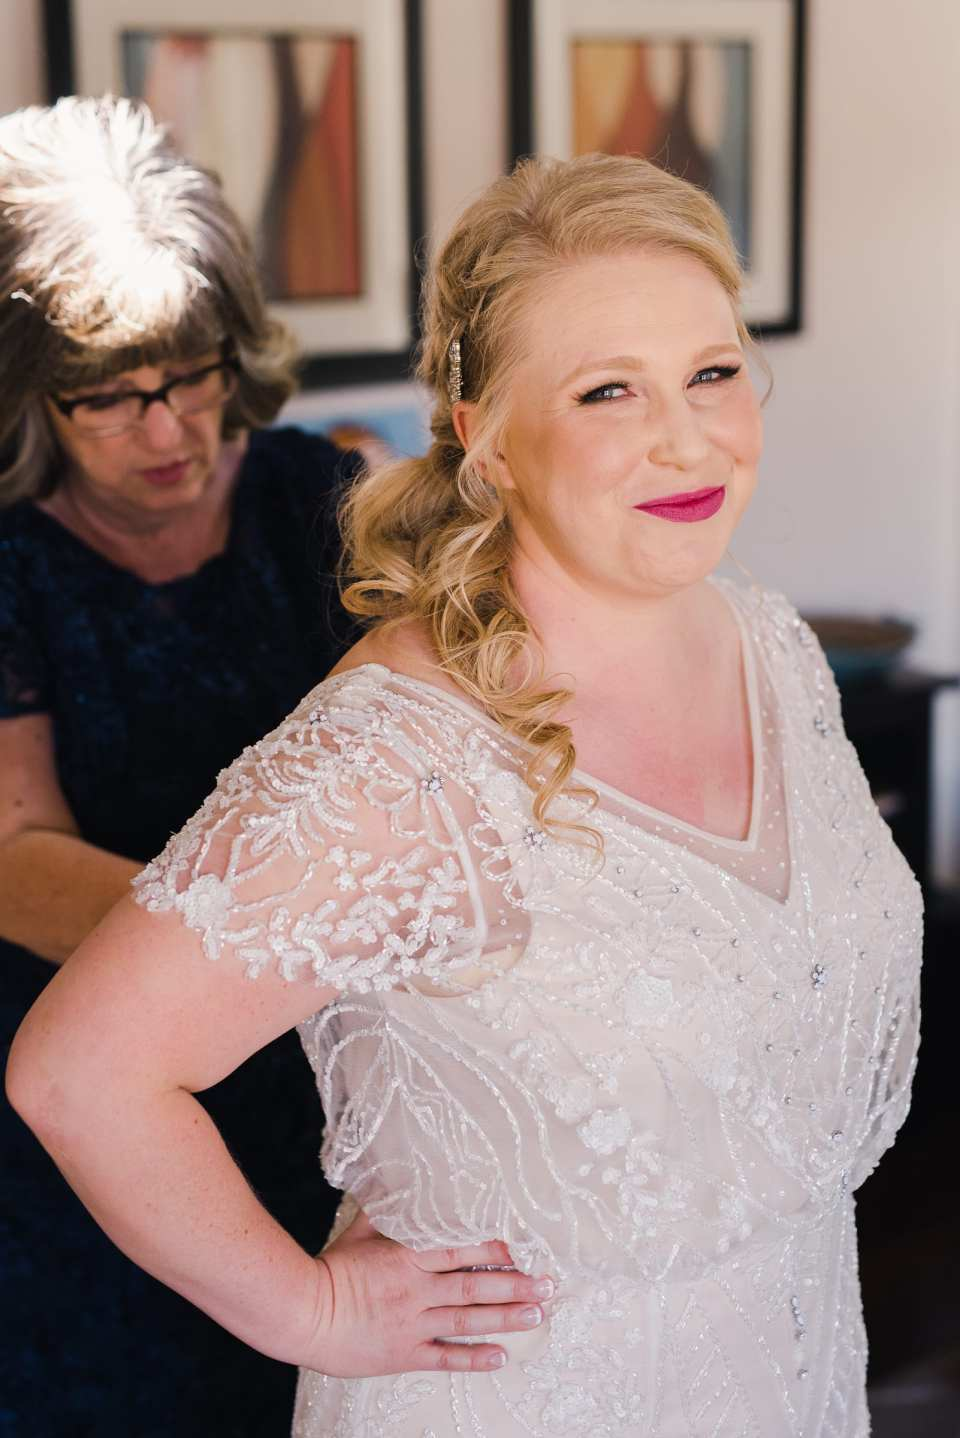 Bridal portraits while getting ready | Josie V Photography